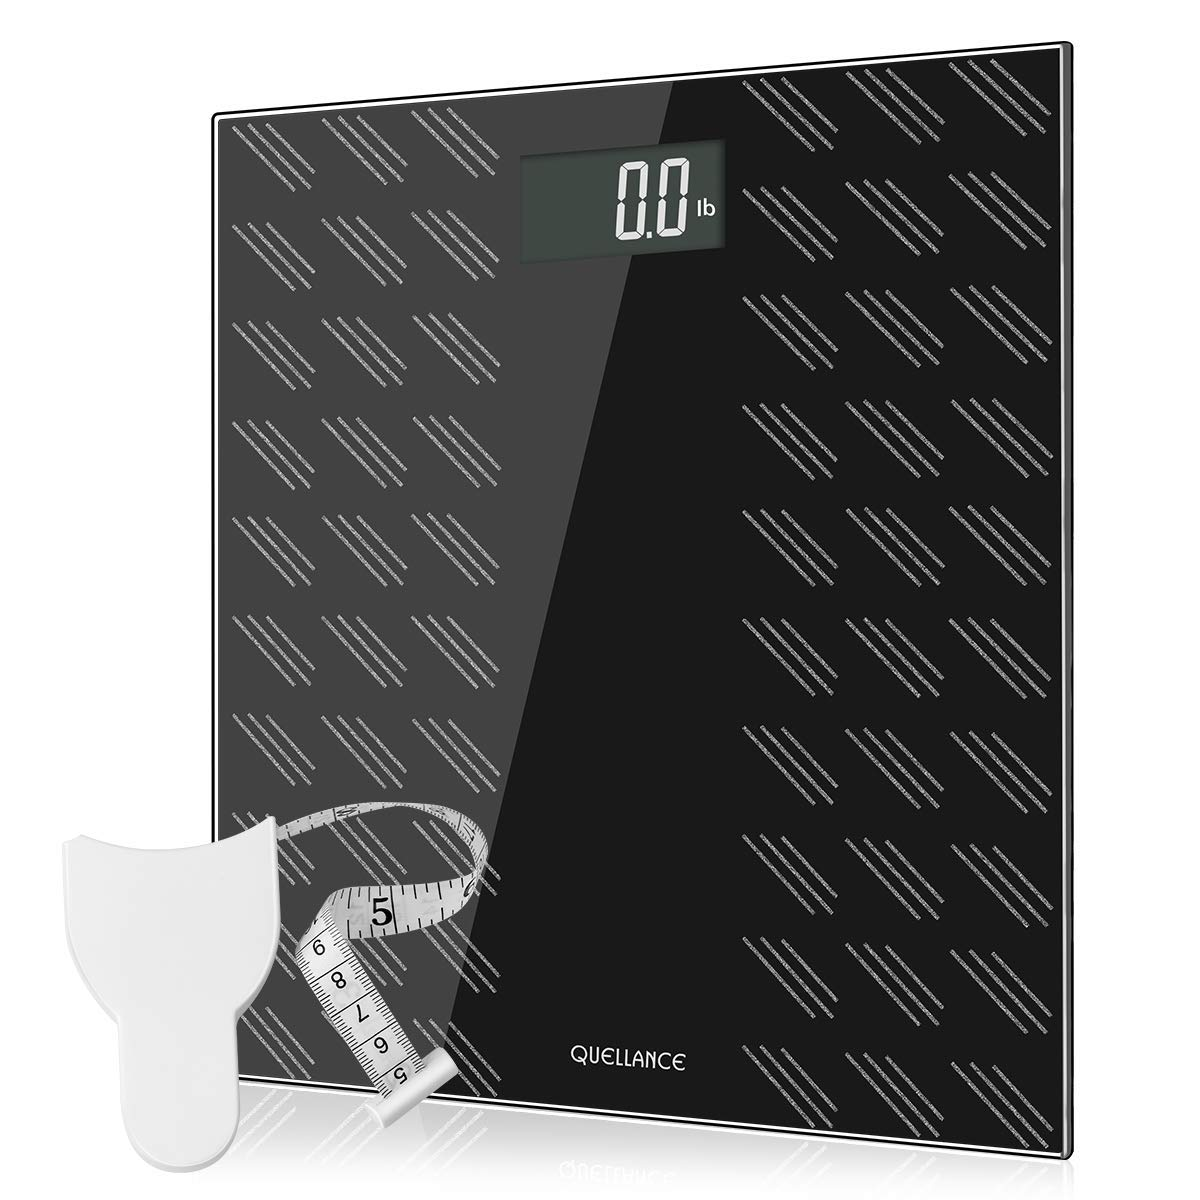 Digital Electronic Scales For Body Weight Bathroom Scale with Step-On Technology, Non-Slip Matte Platform, Up to 400 Pounds, Body Tape Measure Include, Tempered Glass with Large LCD Backlight